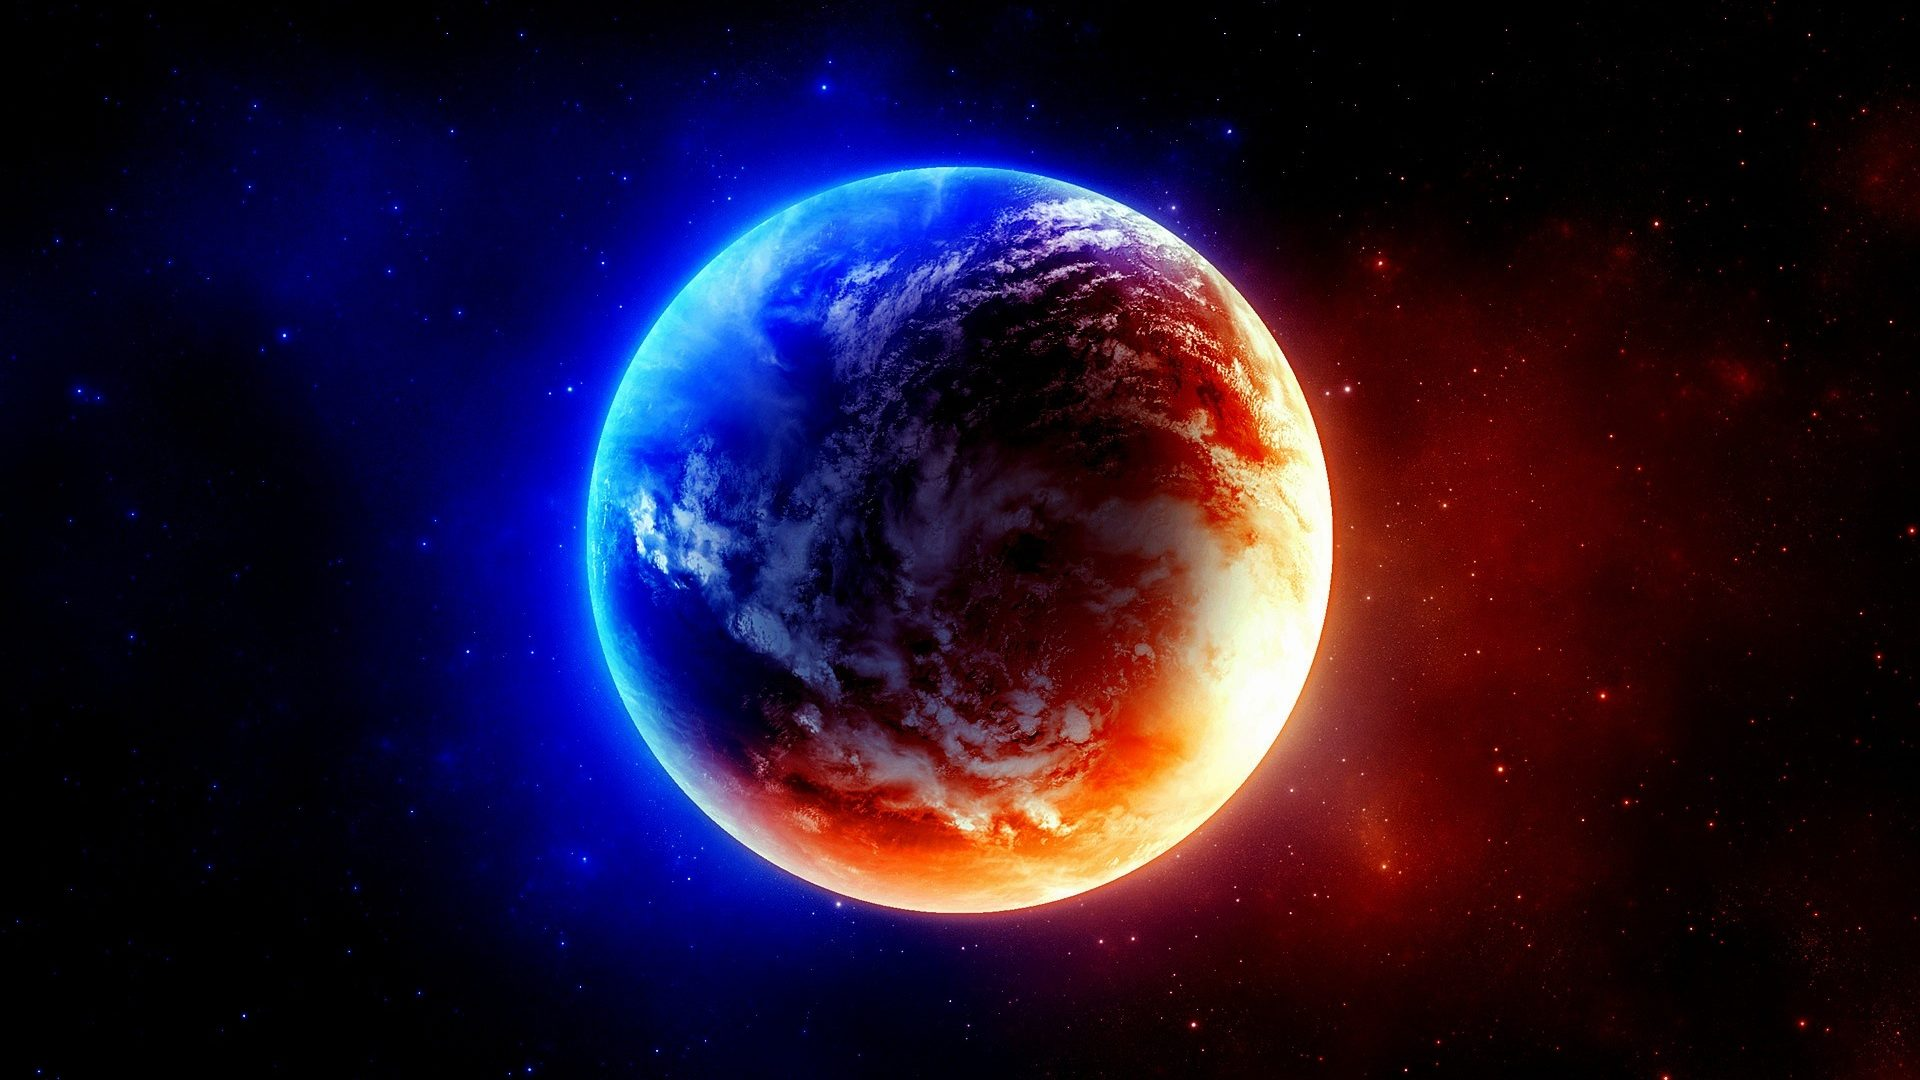 Red And Blue Planet Hd Wallpaper 1920x1080 Trancentral